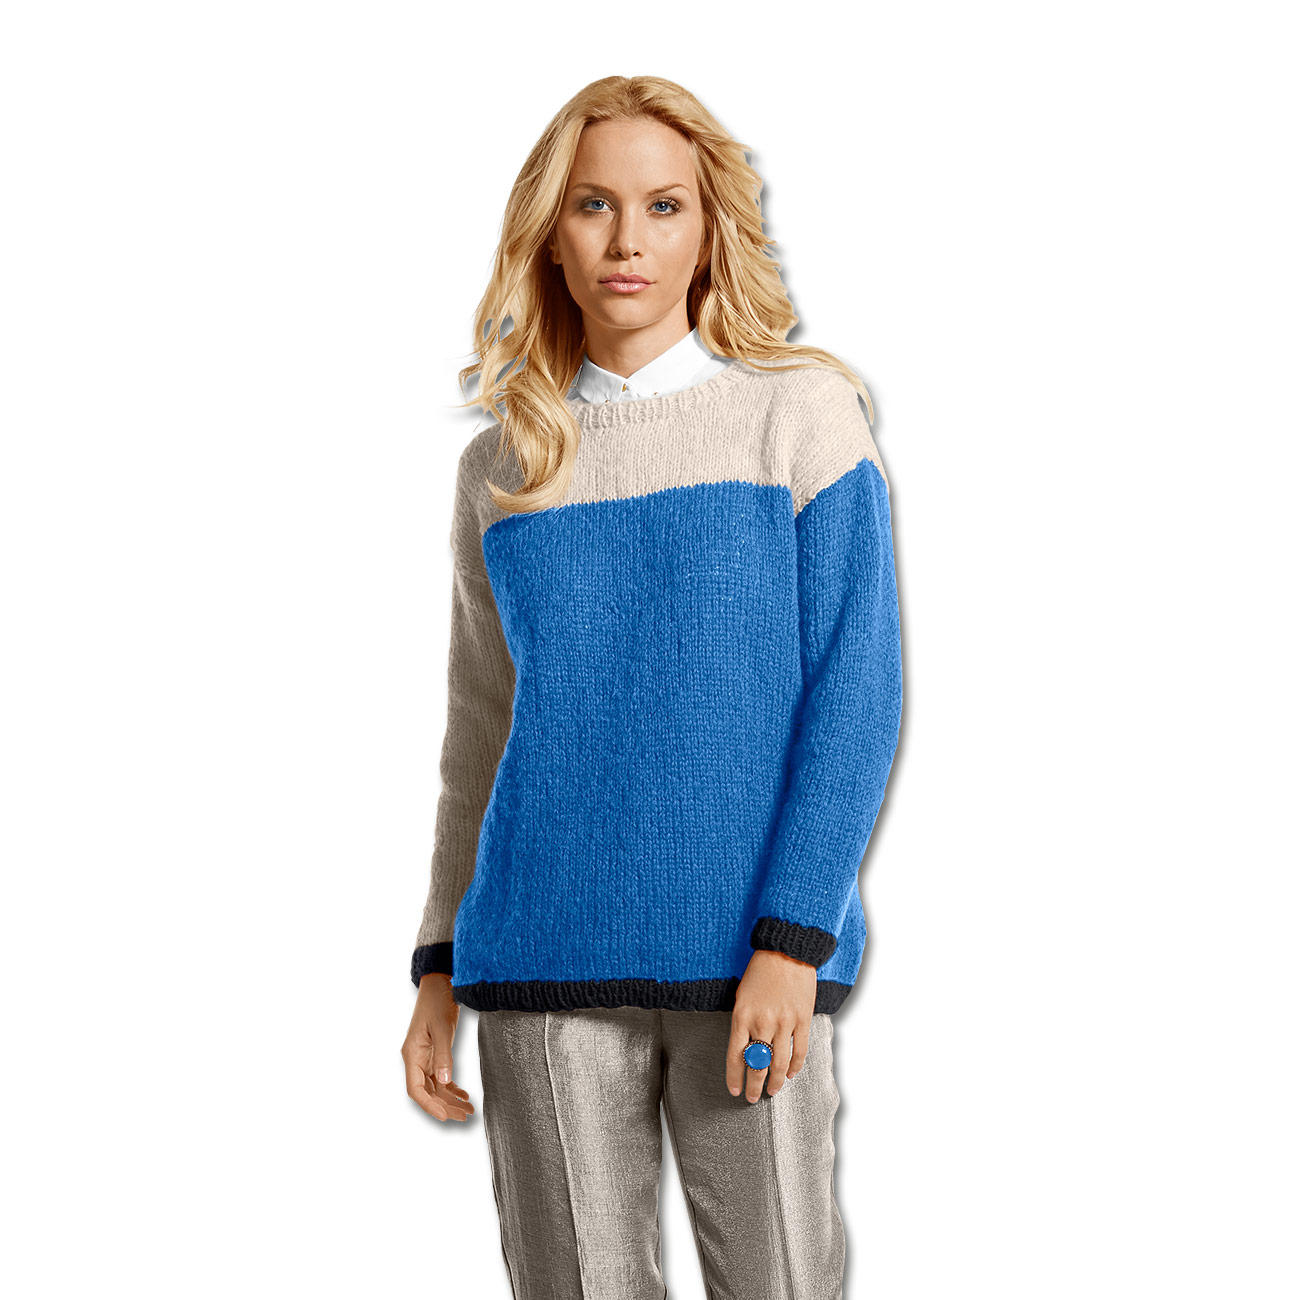 Modell 113 5 pullover aus aerea von junghans wolle 5 - Junghanns wolle ...